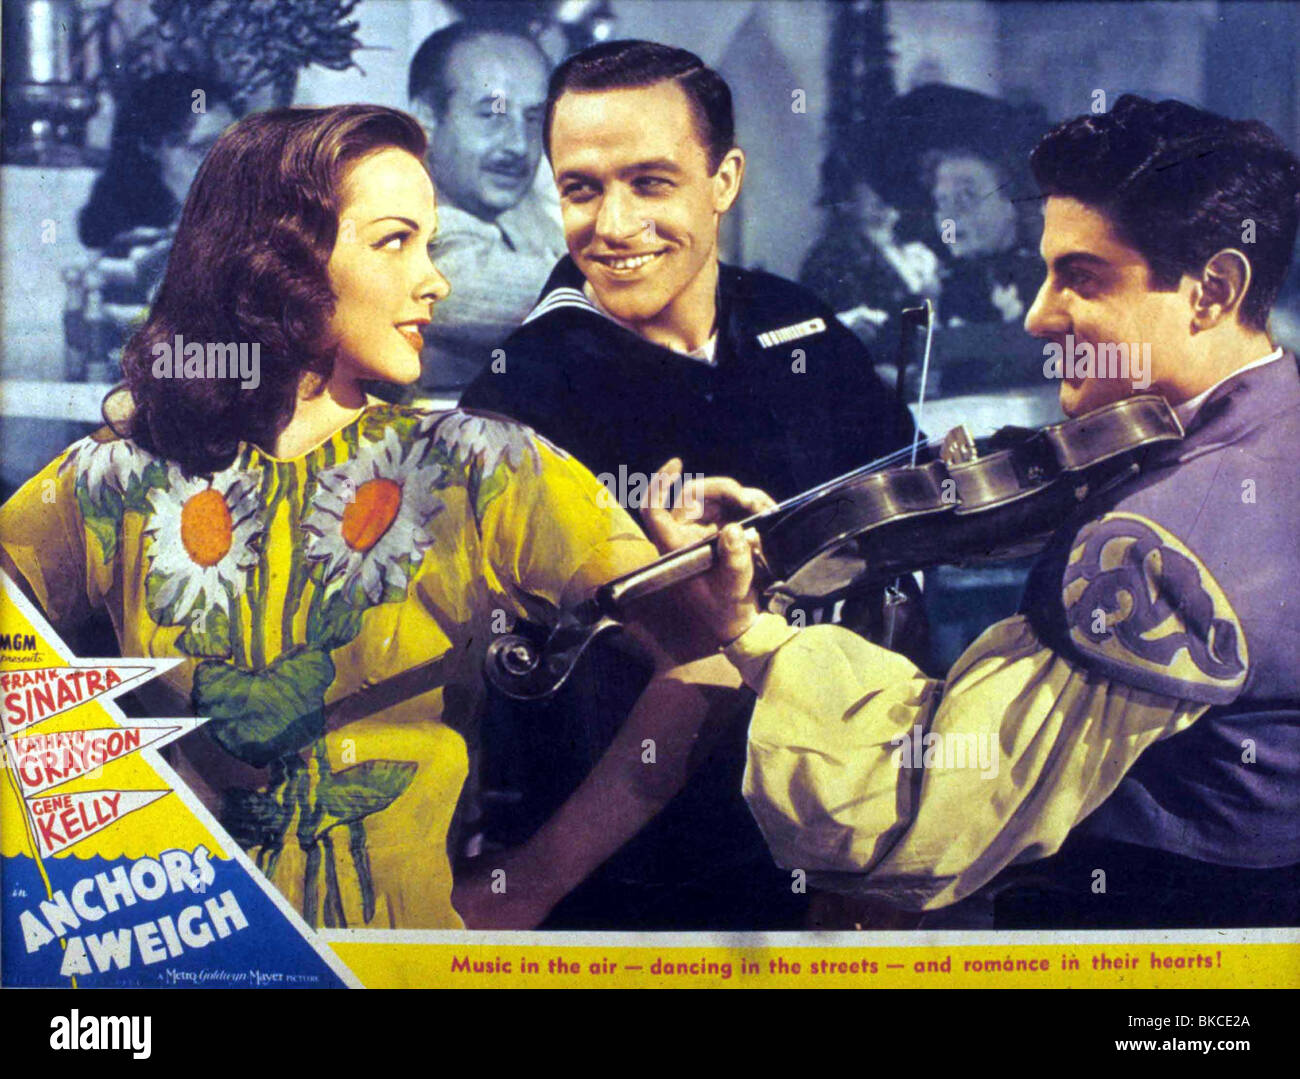 ANCHORS AWEIGH (1945) KATHRYN GRAYSON, GENE KELLY ANCA 008 - Stock Image